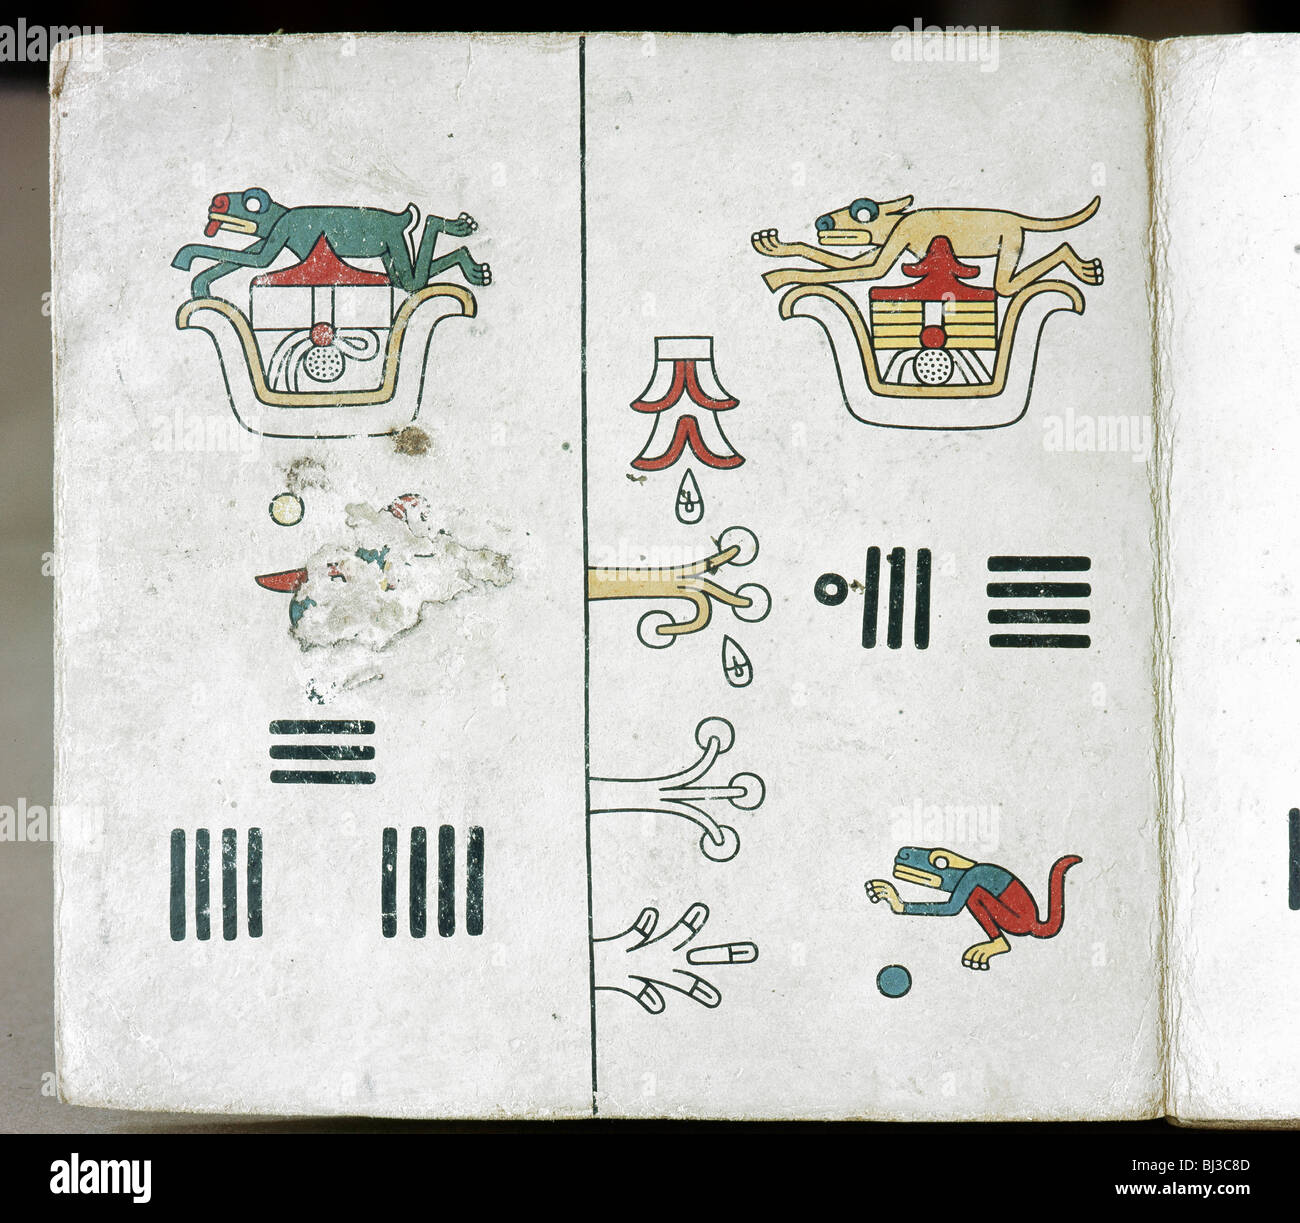 Page from the codex fejervary mayer with date symbols mixtec page from the codex fejervary mayer with date symbols mixtec mexico pre 1521 artist werner forman buycottarizona